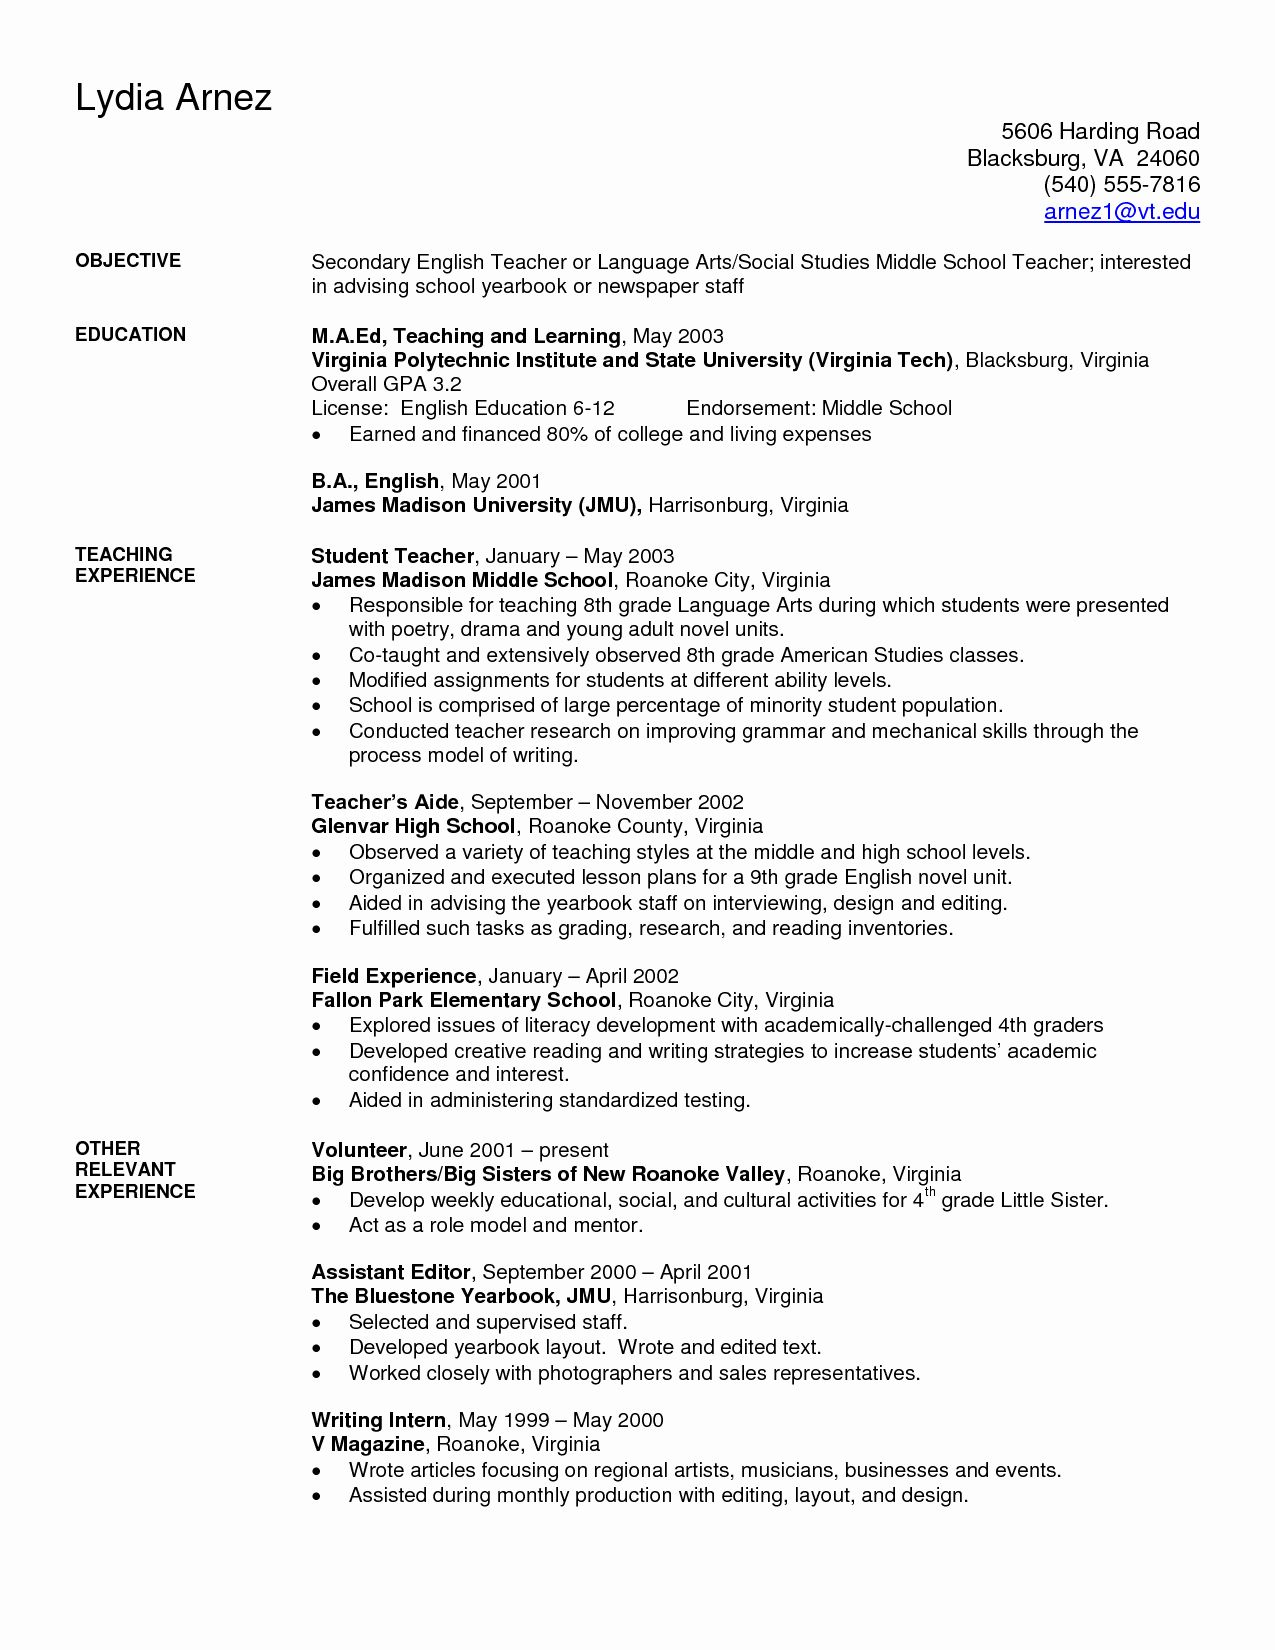 free teacher resume templates unique art examples elementary best maker software rutgers Resume Teacher Resume Examples 2020